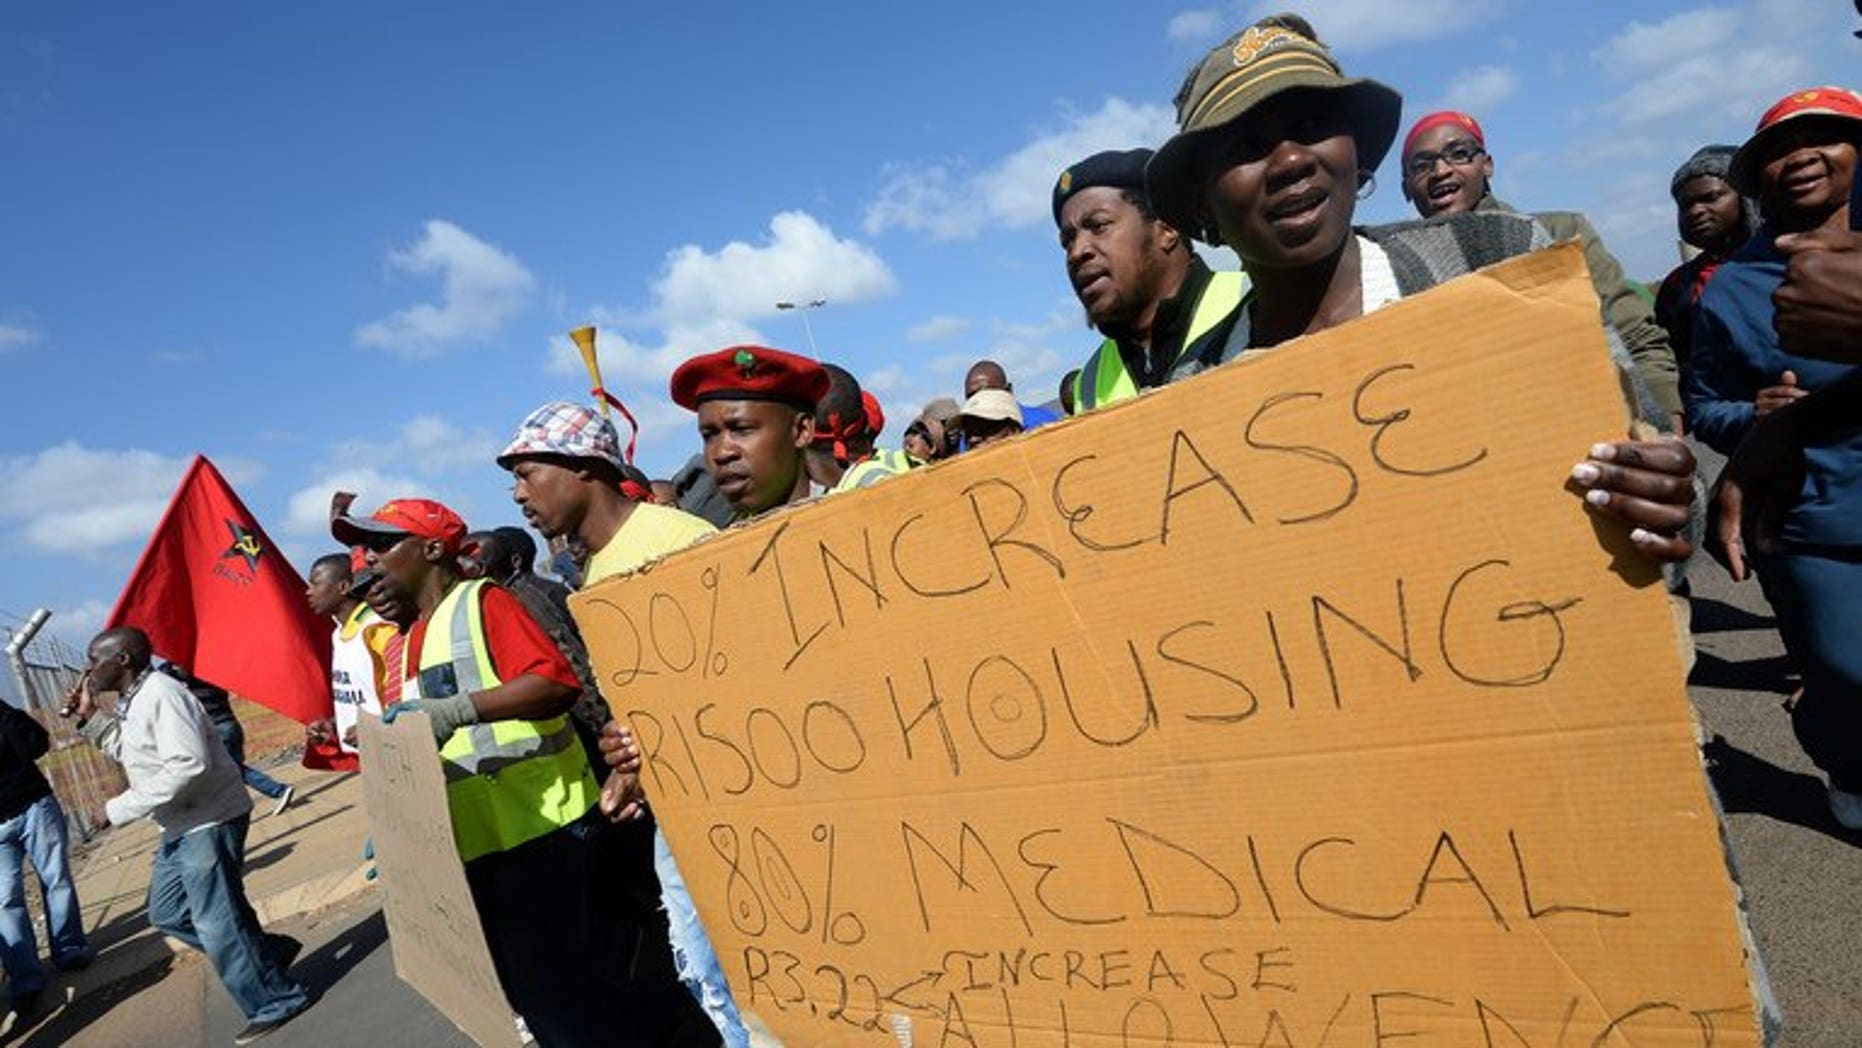 Workers on strike hold a placard asking for wage increases as they demonstrate outside Ford's plant in Pretoria on August 20, 2013.